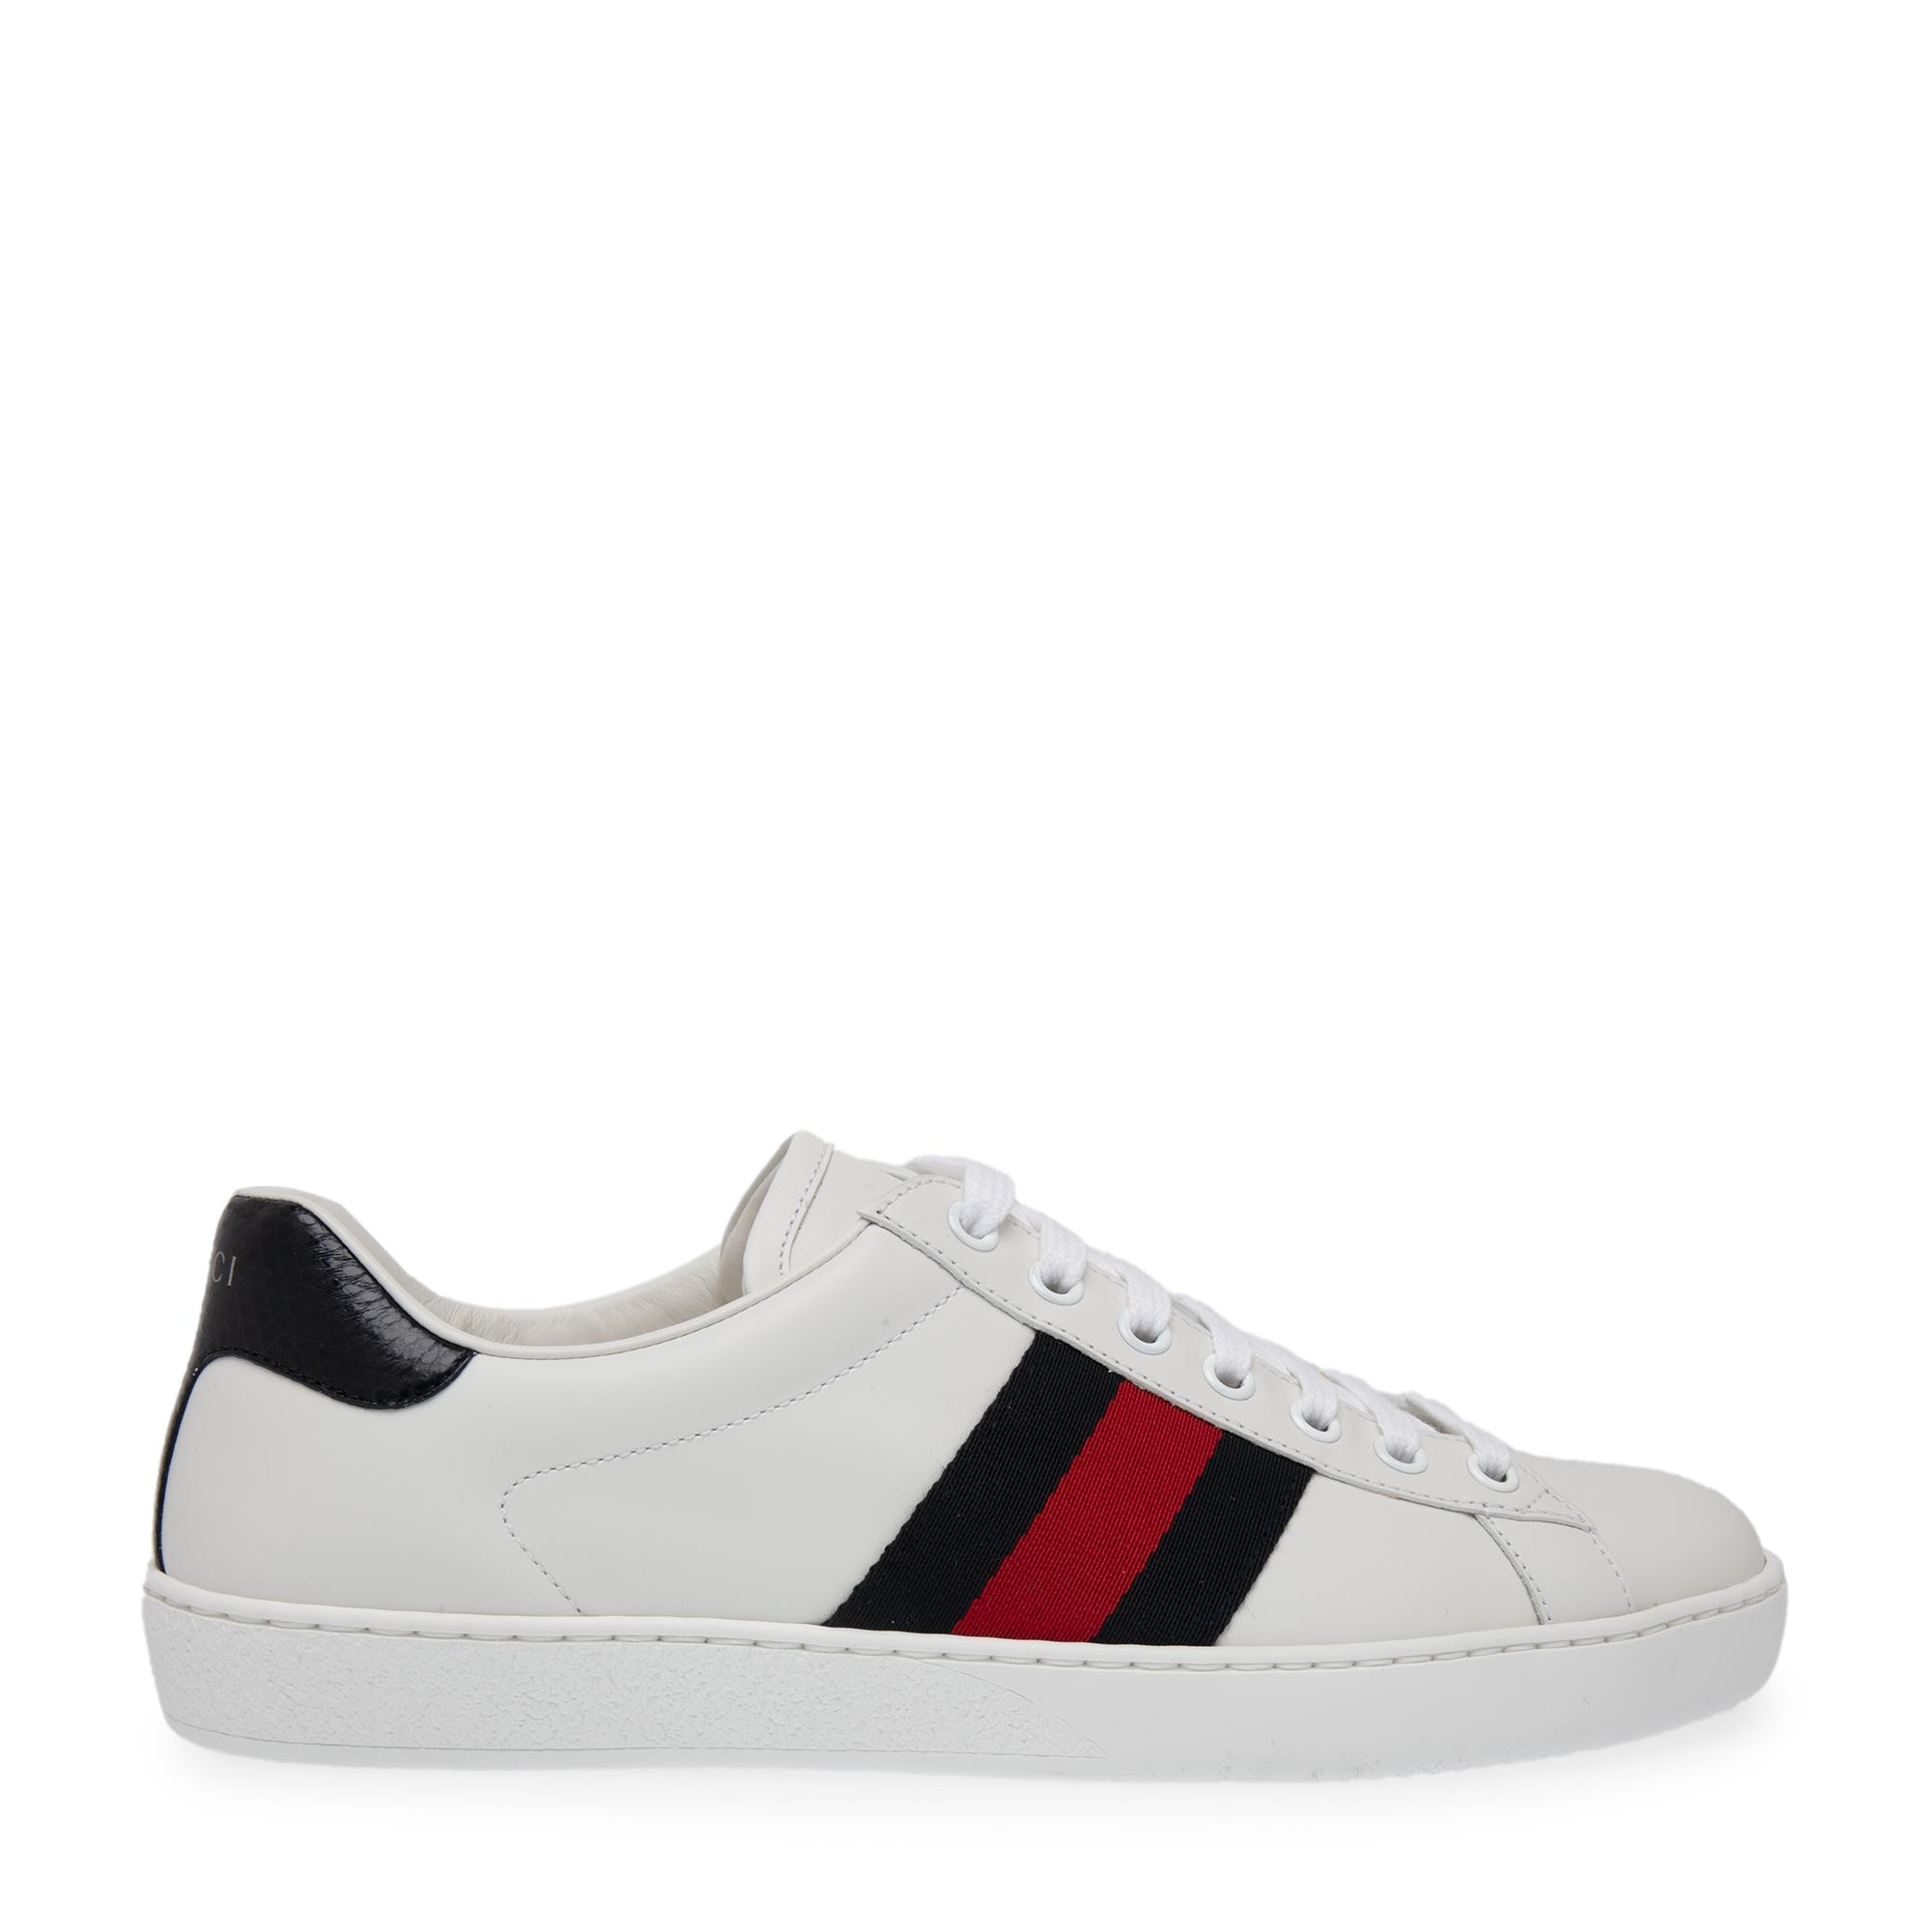 Ace sneakers